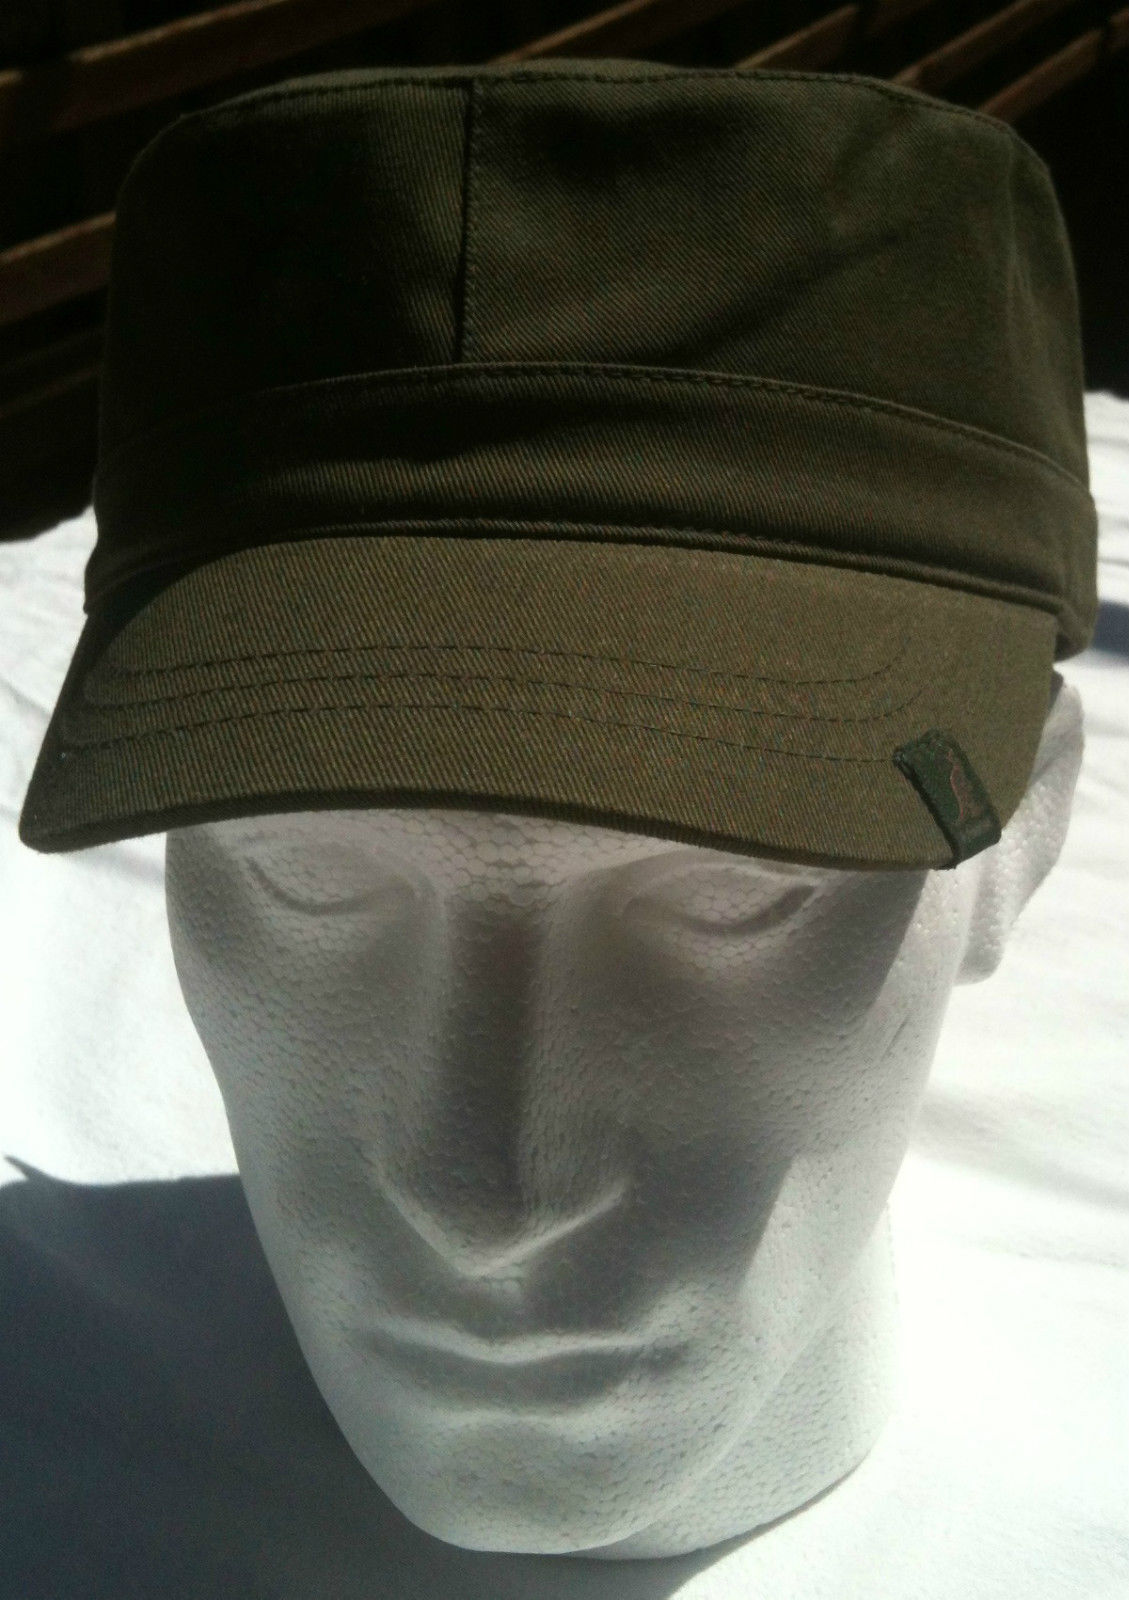 5c0a3ff3 KANGOL 100% Cotton Adjustable Army Cap Military Style Cadet Hat 9642BC Men's